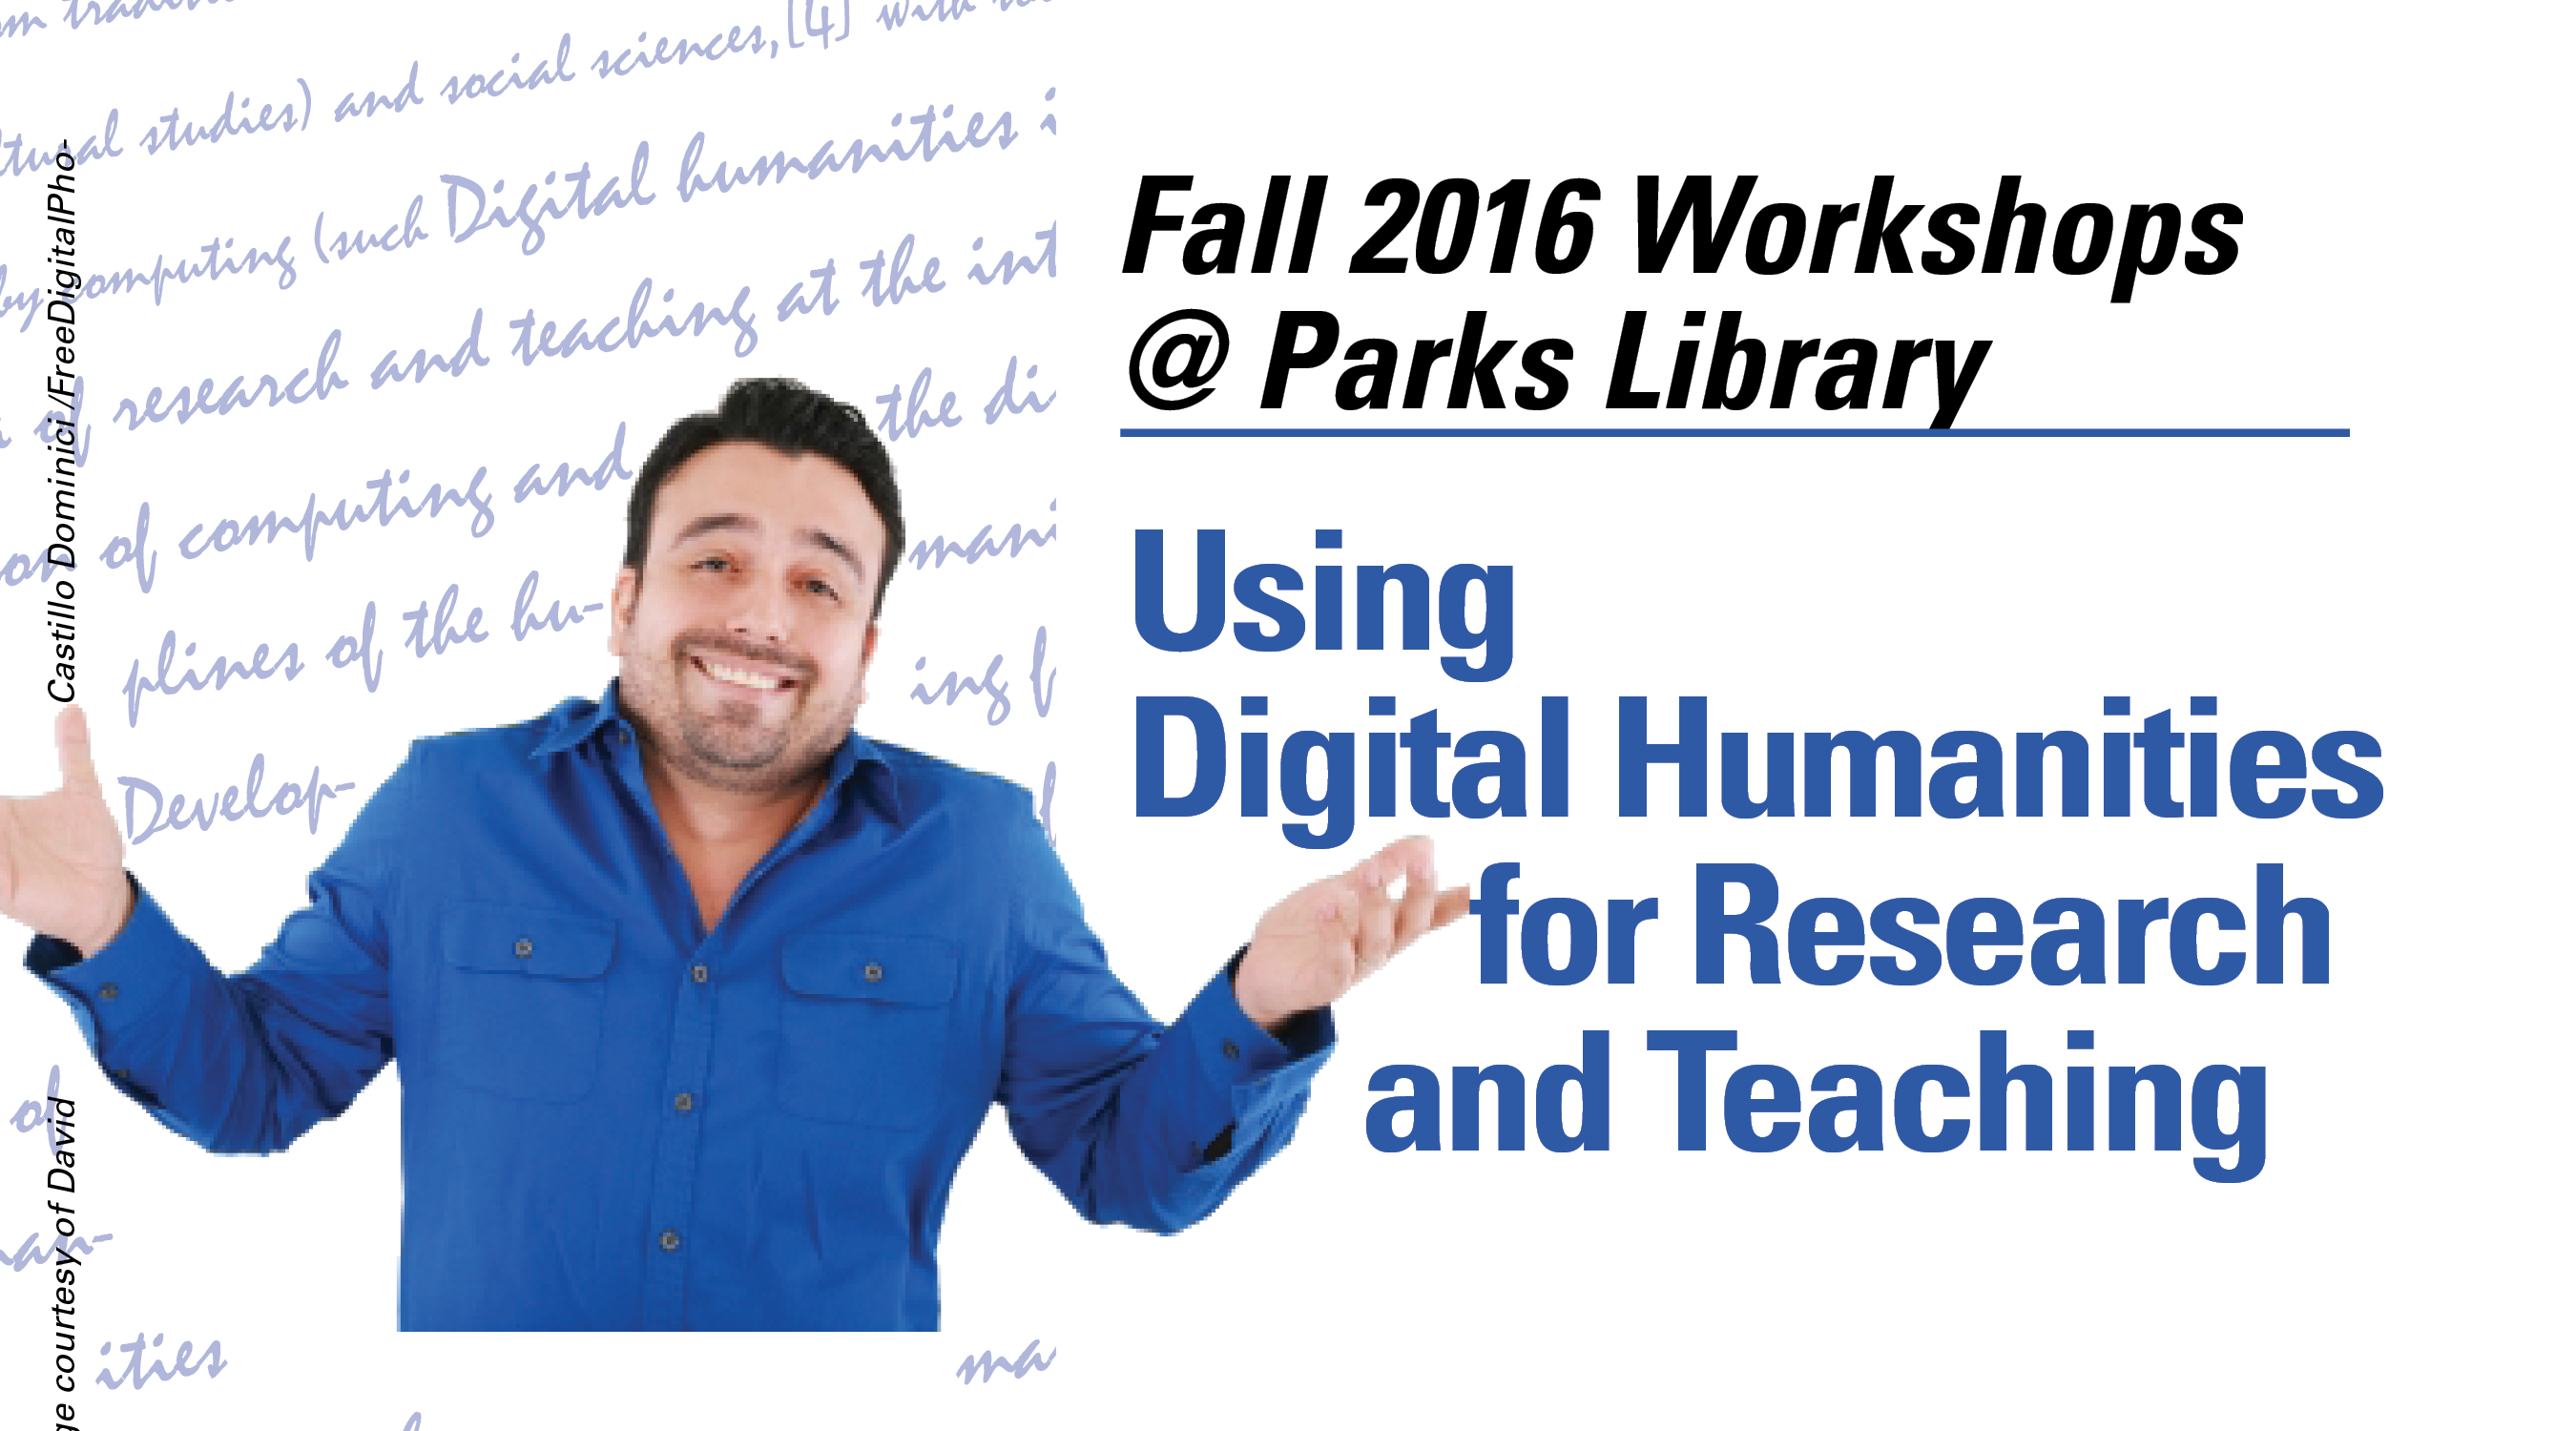 Image of confused man. Title: Using Digital Humanities in Research and Teaching.